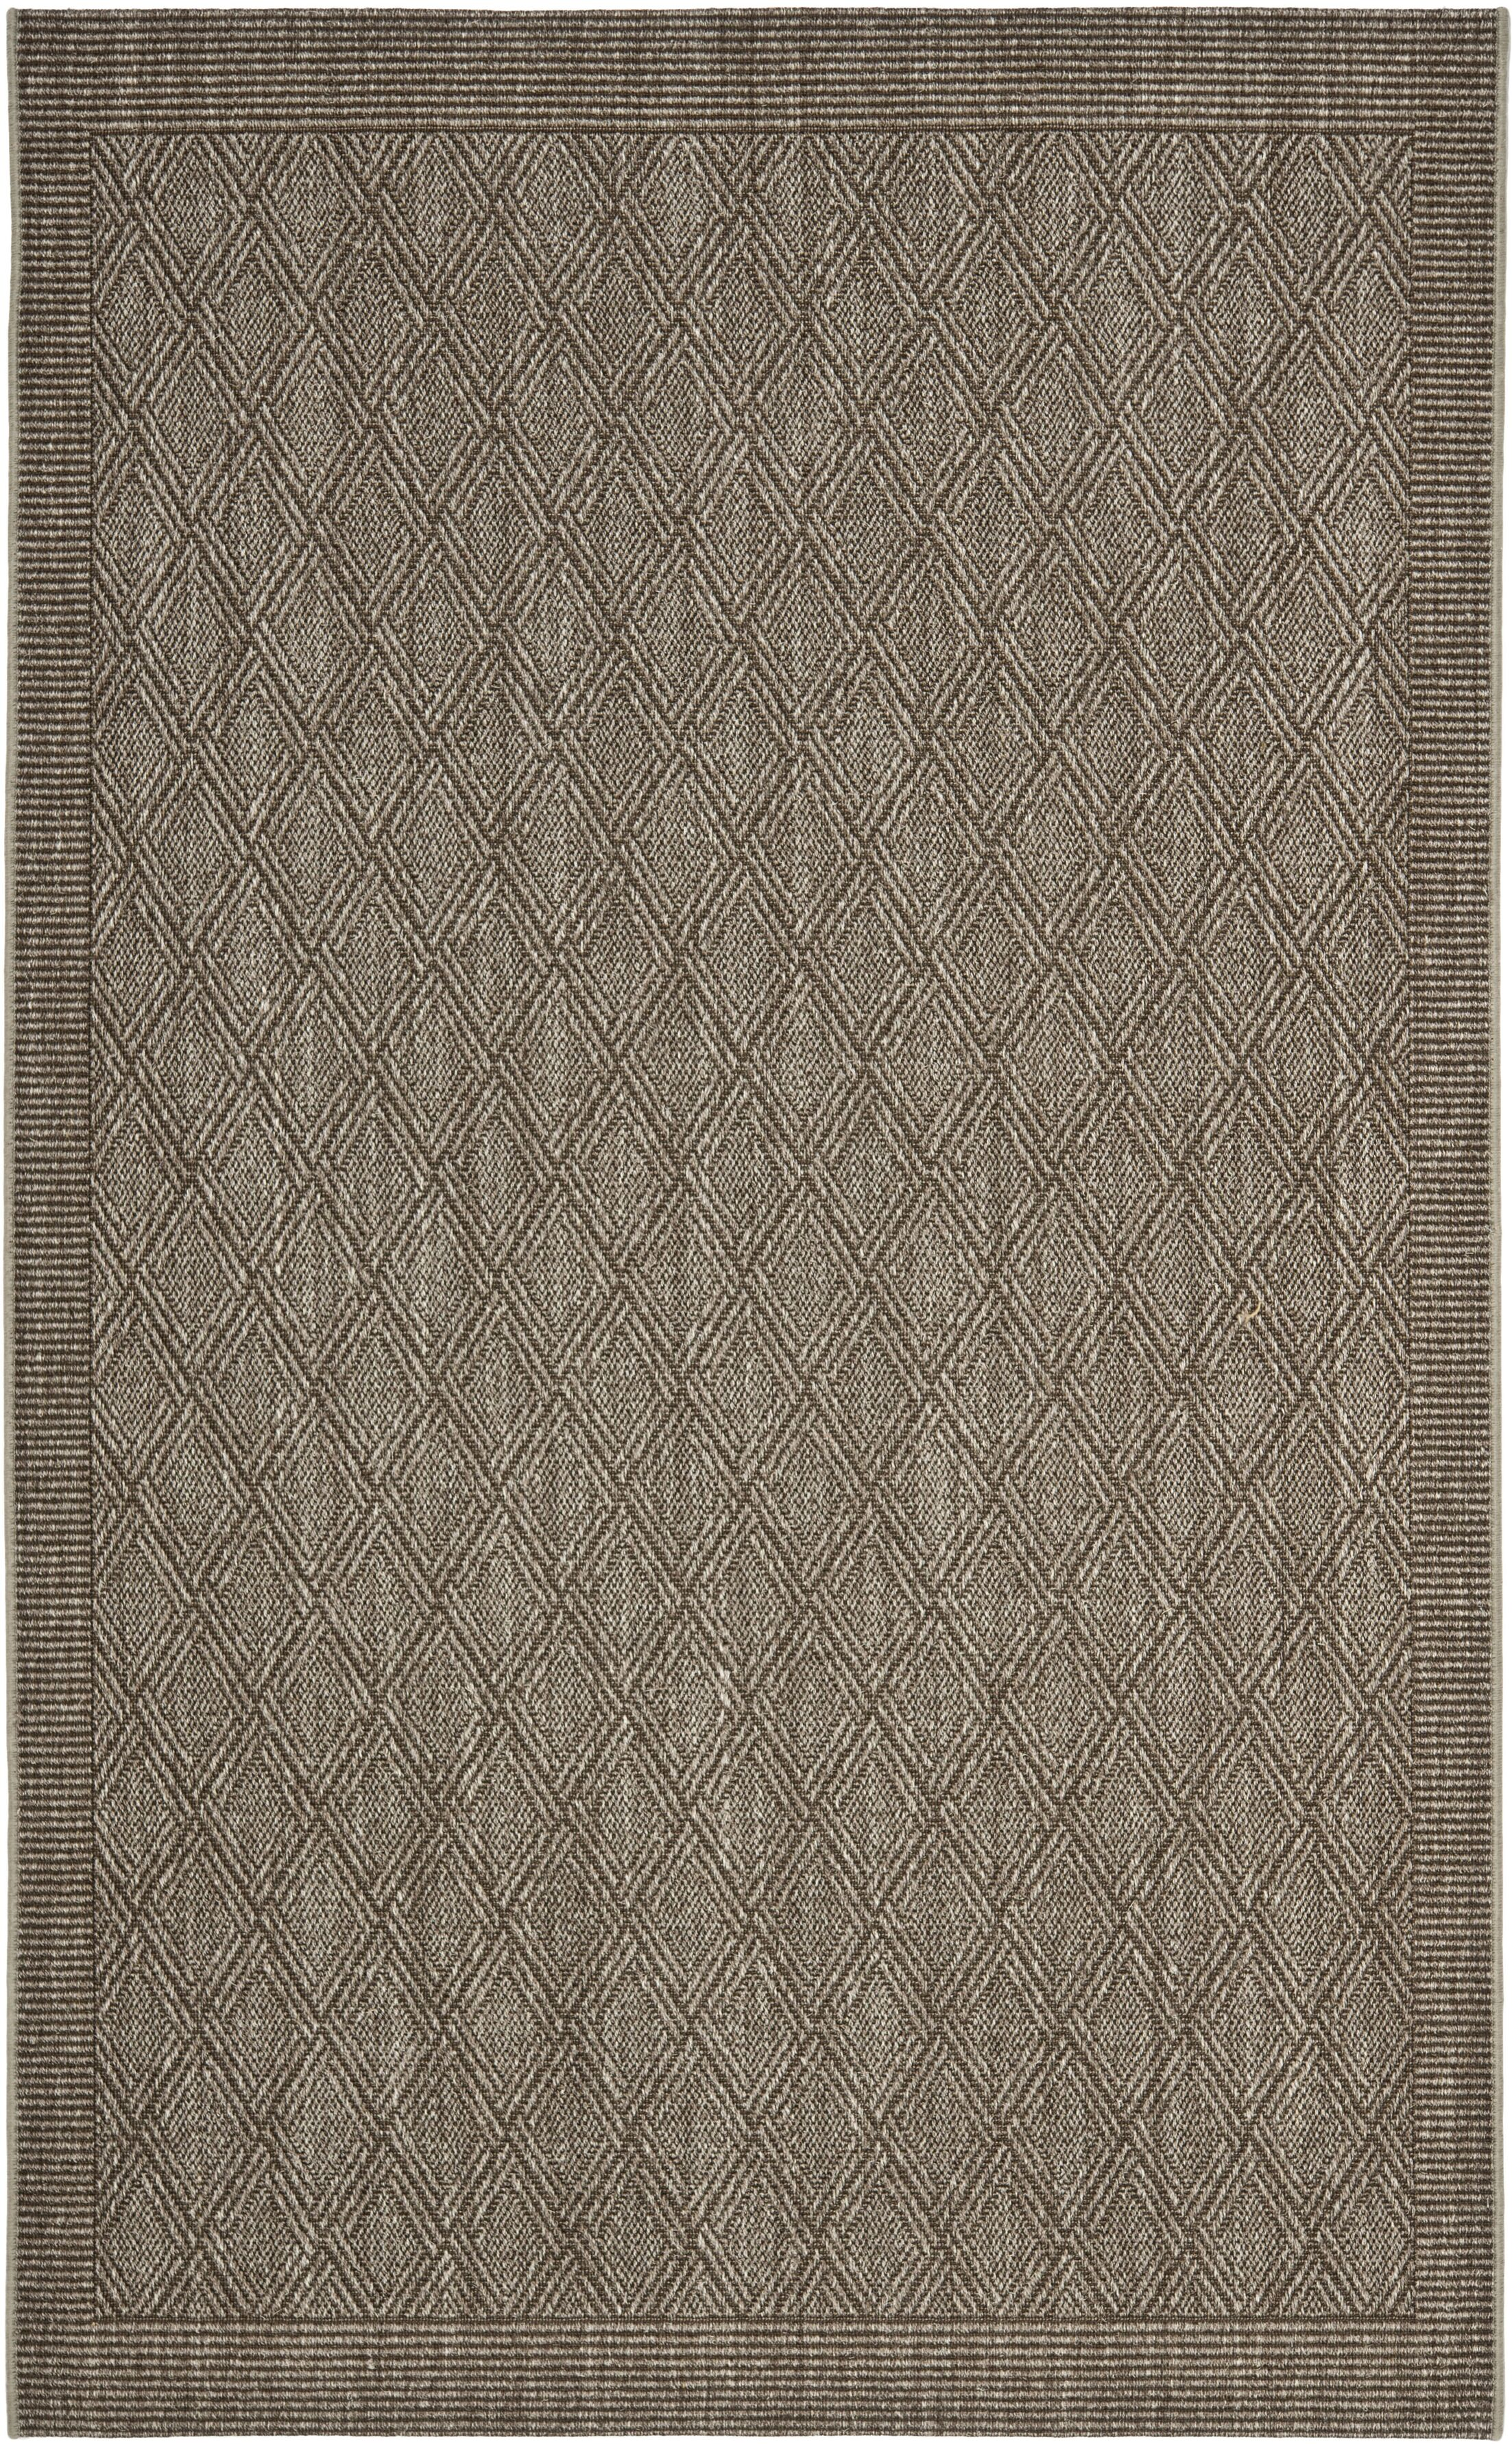 Allegra Hand-Woven Silver Area Rug Rug Size: Rectangle 6' x 9'